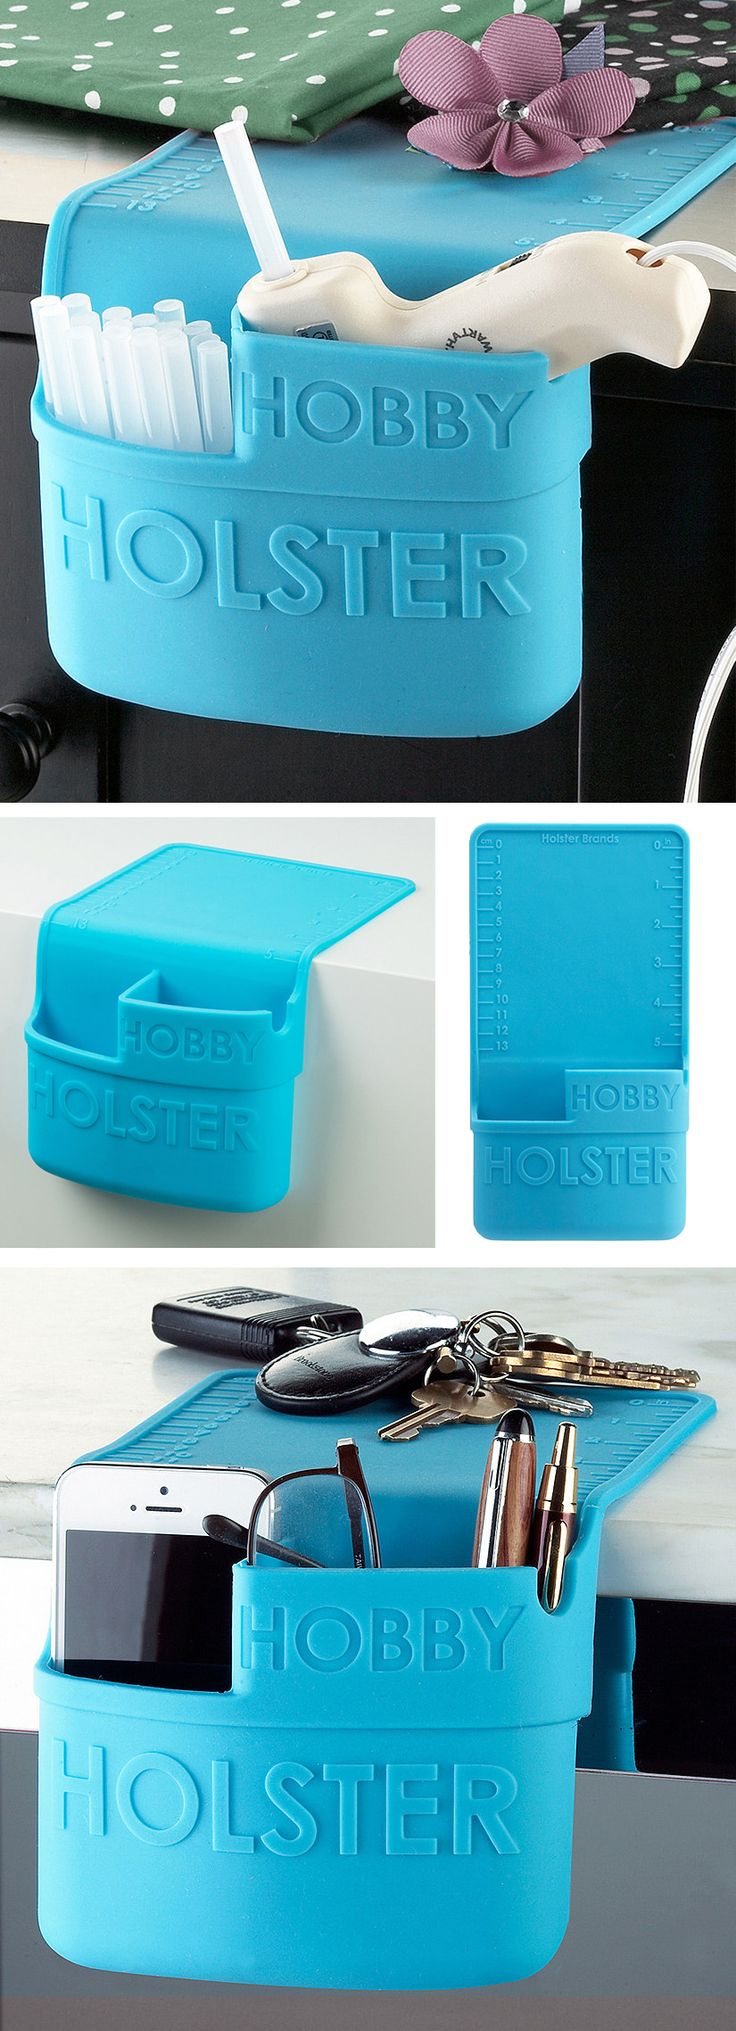 Hobby holster // Portable silicone holder grips to any smooth surface, easy to remove, heat resistant - can hold a hot glue gun!